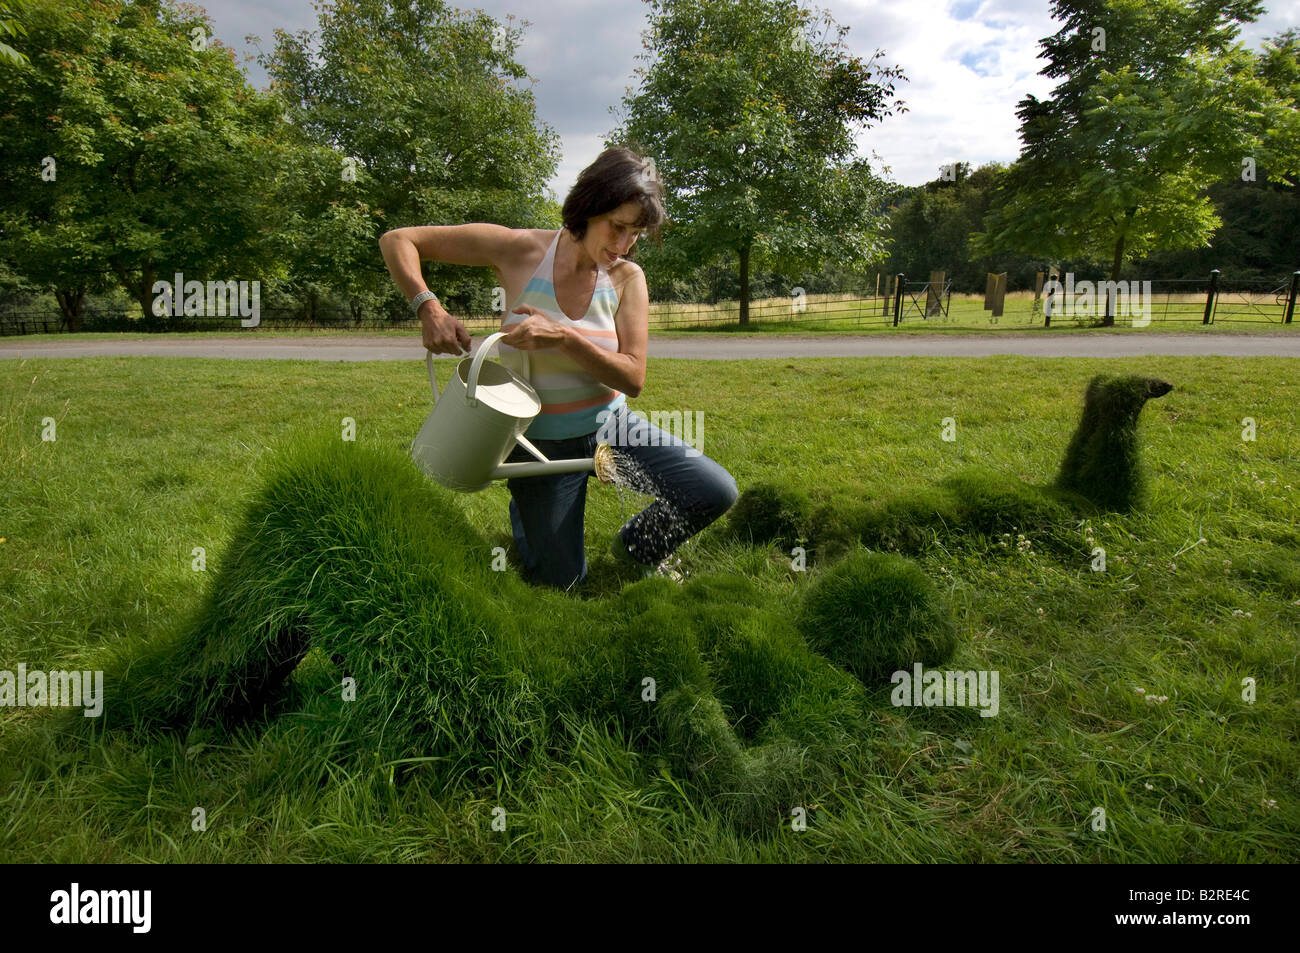 Artist Sharon Baker waters some of her grass sculptures of human figures with a watering can - Stock Image